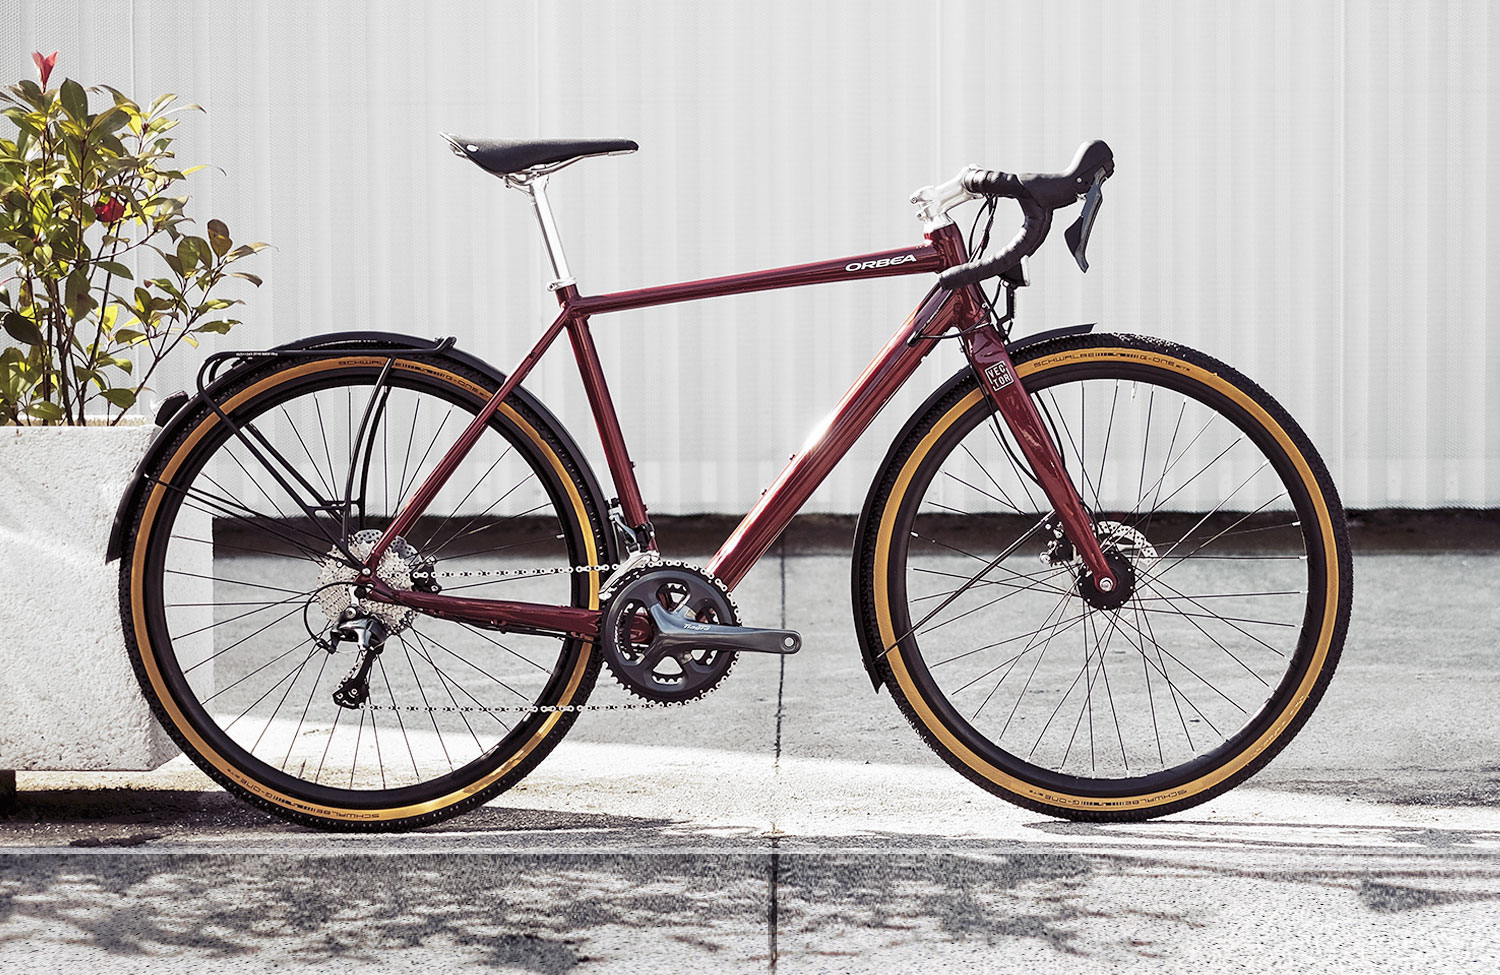 Urban bike news for 2021: Orbea's new Carpe and Vector models